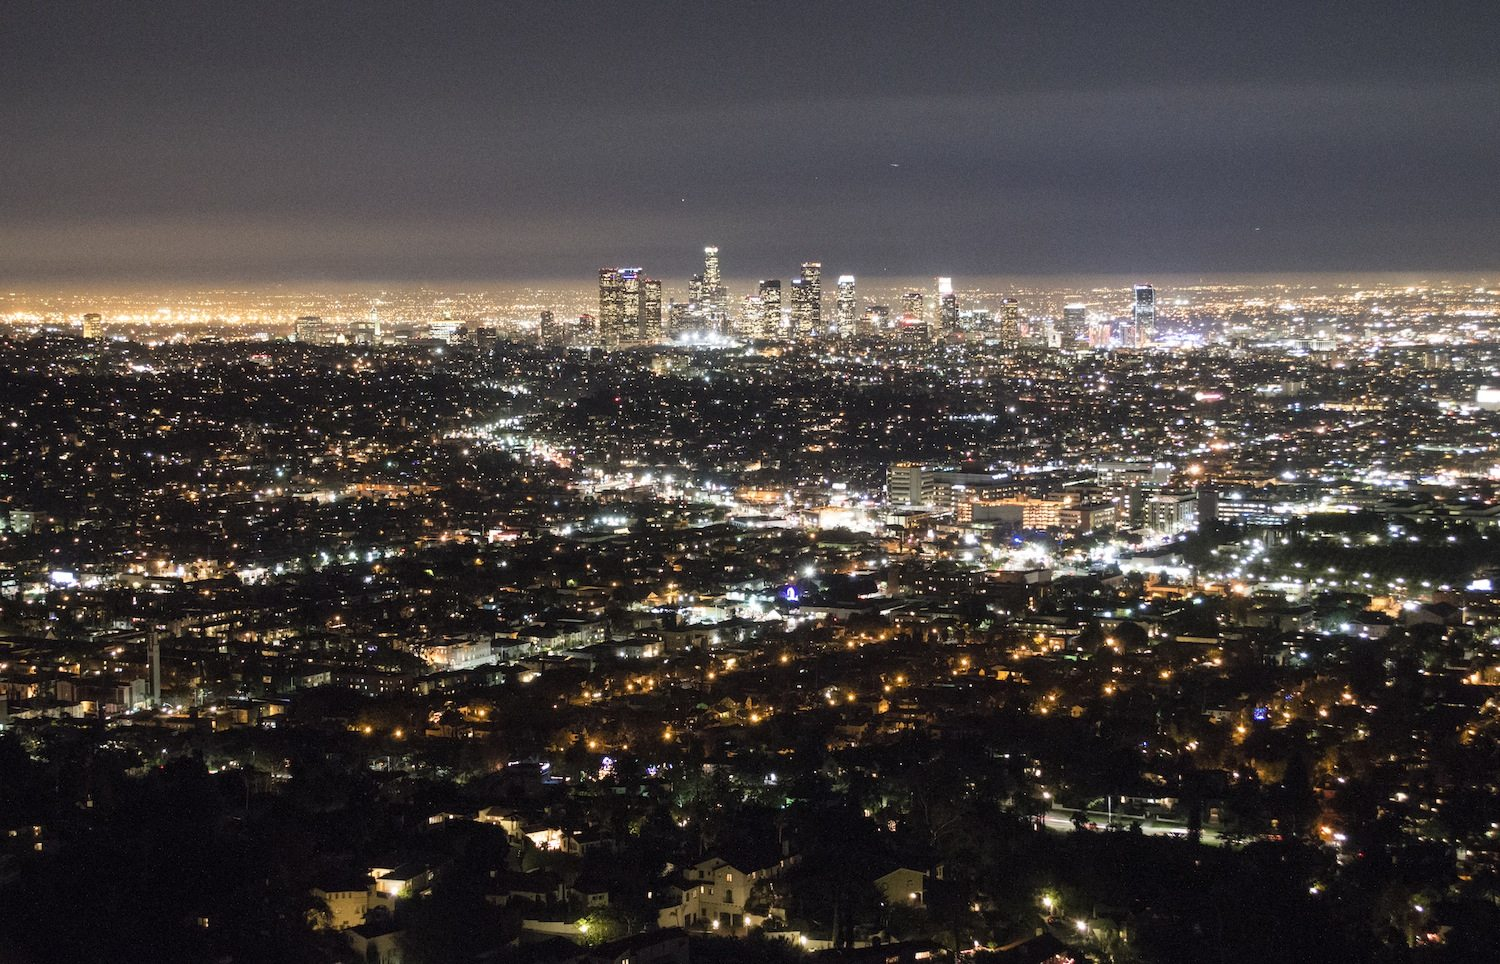 Griffith Observatory view by Christina Guan